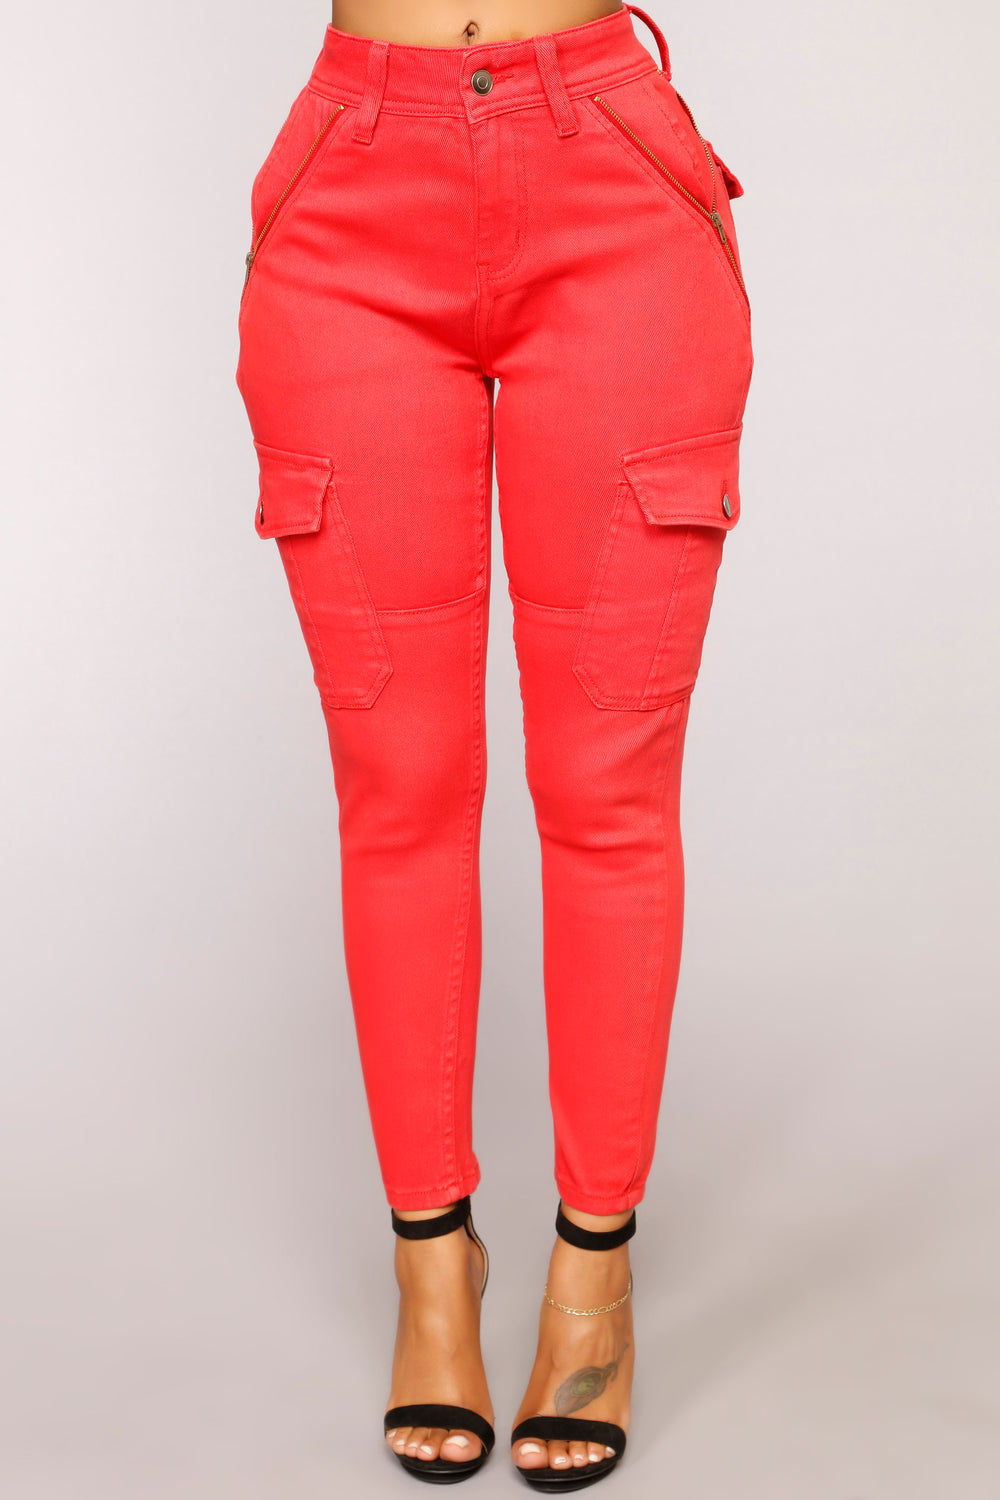 You Give Me Fever Cargo Jeans - Red